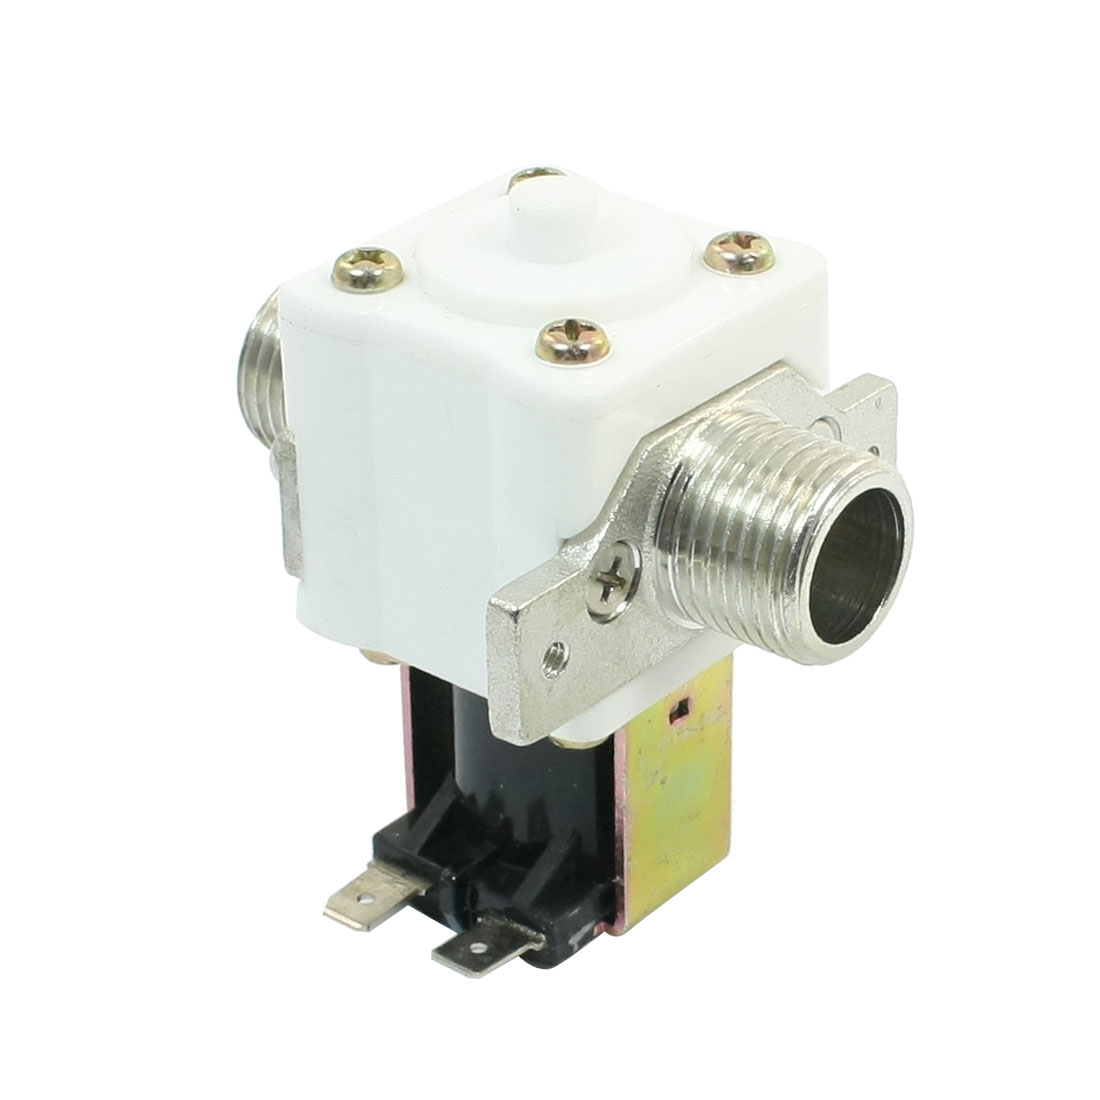 Normally Close 20mm Male Thread Solenoid Valve 220V for Water Air